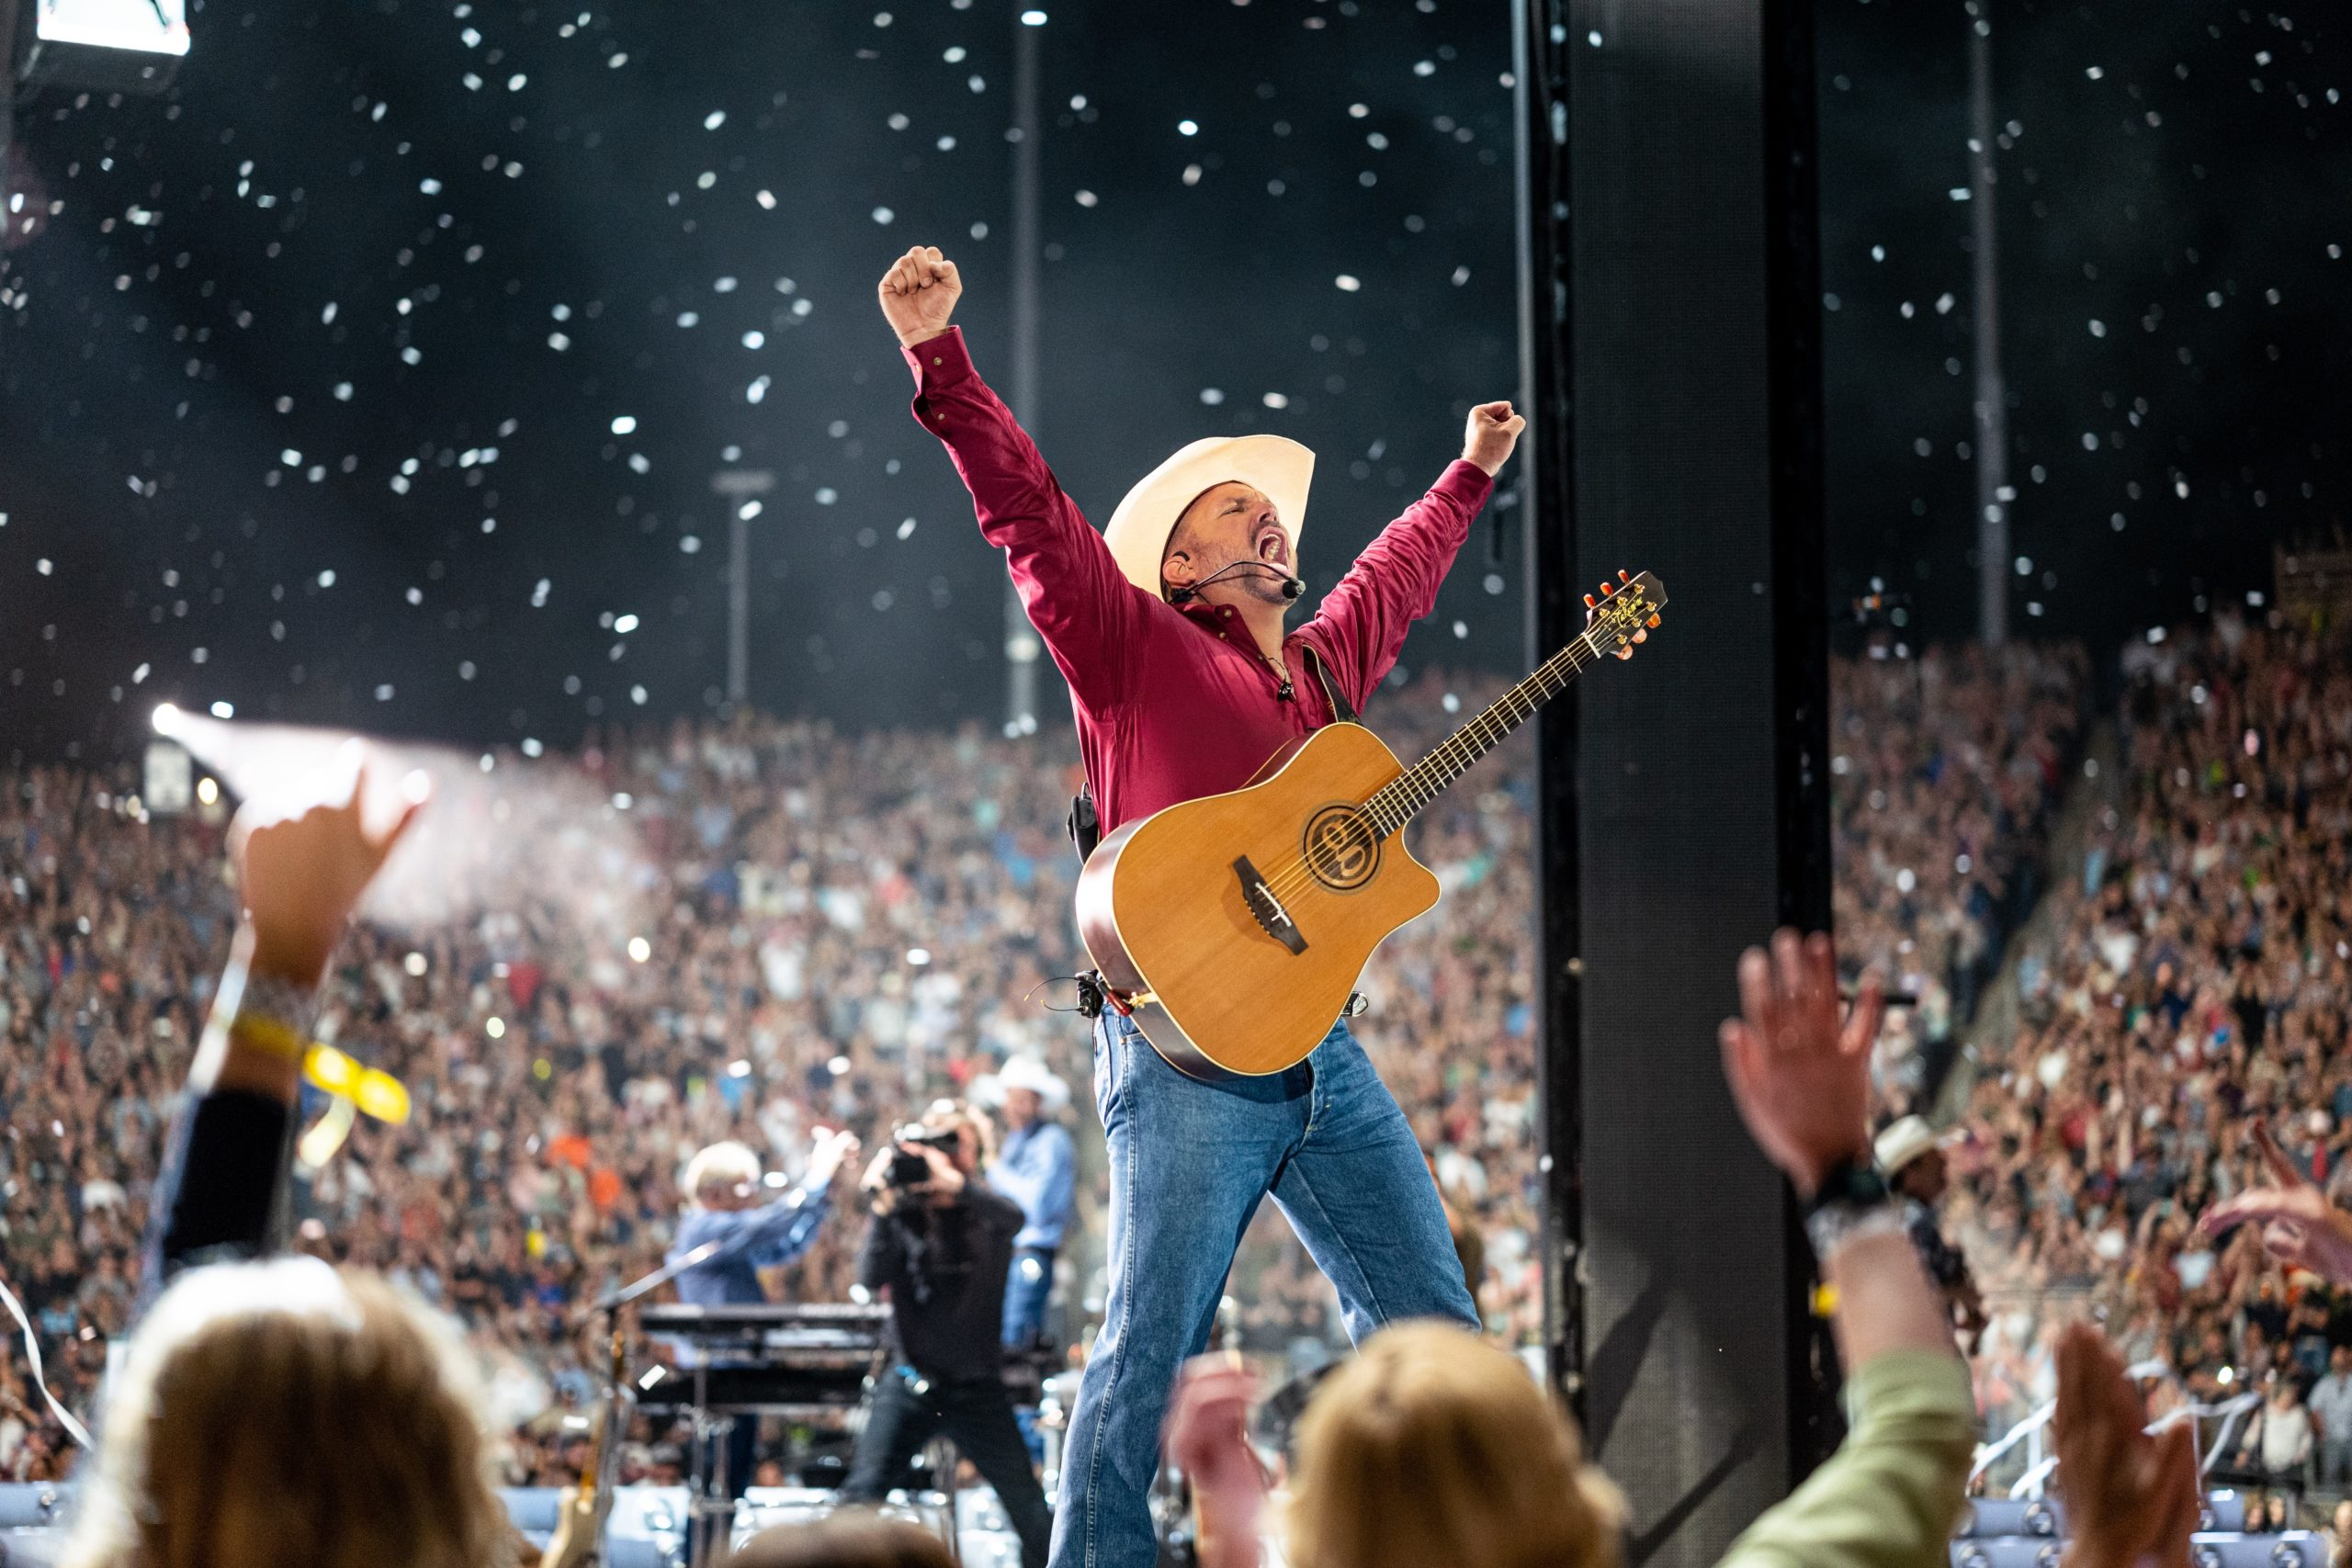 #GarthDriveIntickets are ON SALE NOW! Tickets Available Now! http://ticketmaster.com/garthbrooks  #movies #cinema #photography #food